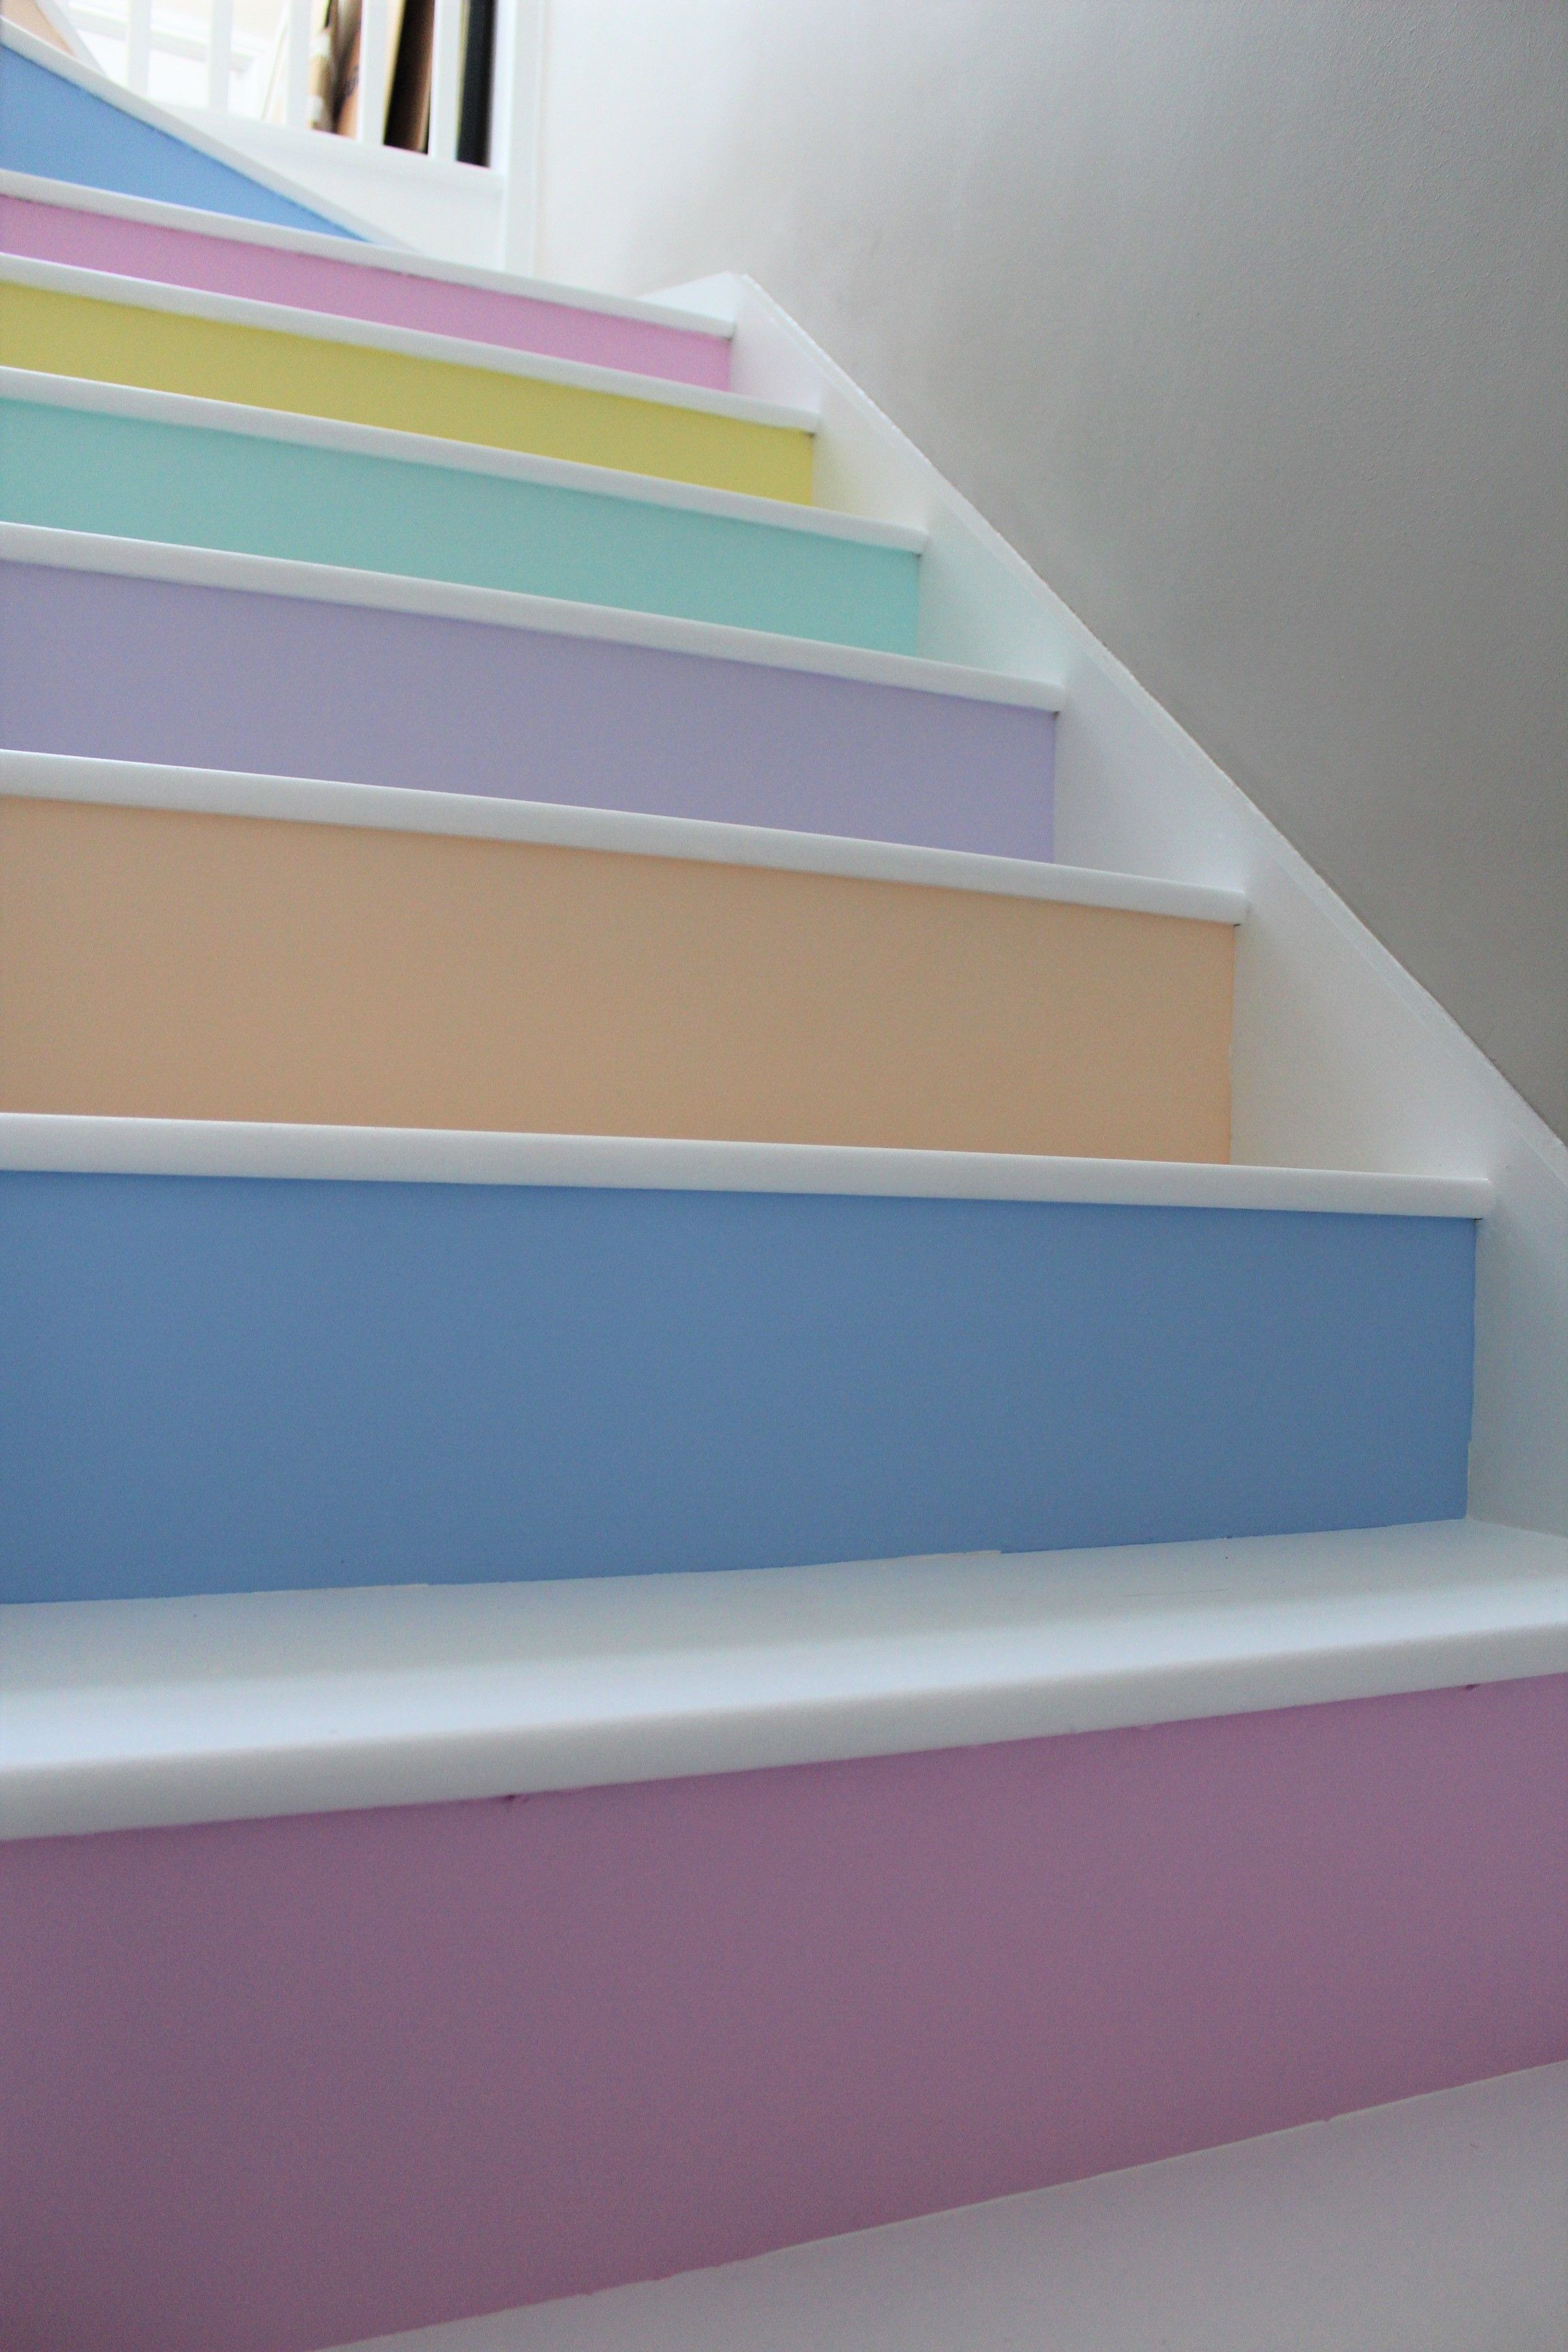 My Stairs White Rustoleum Chalky Floor Paint On The Treads